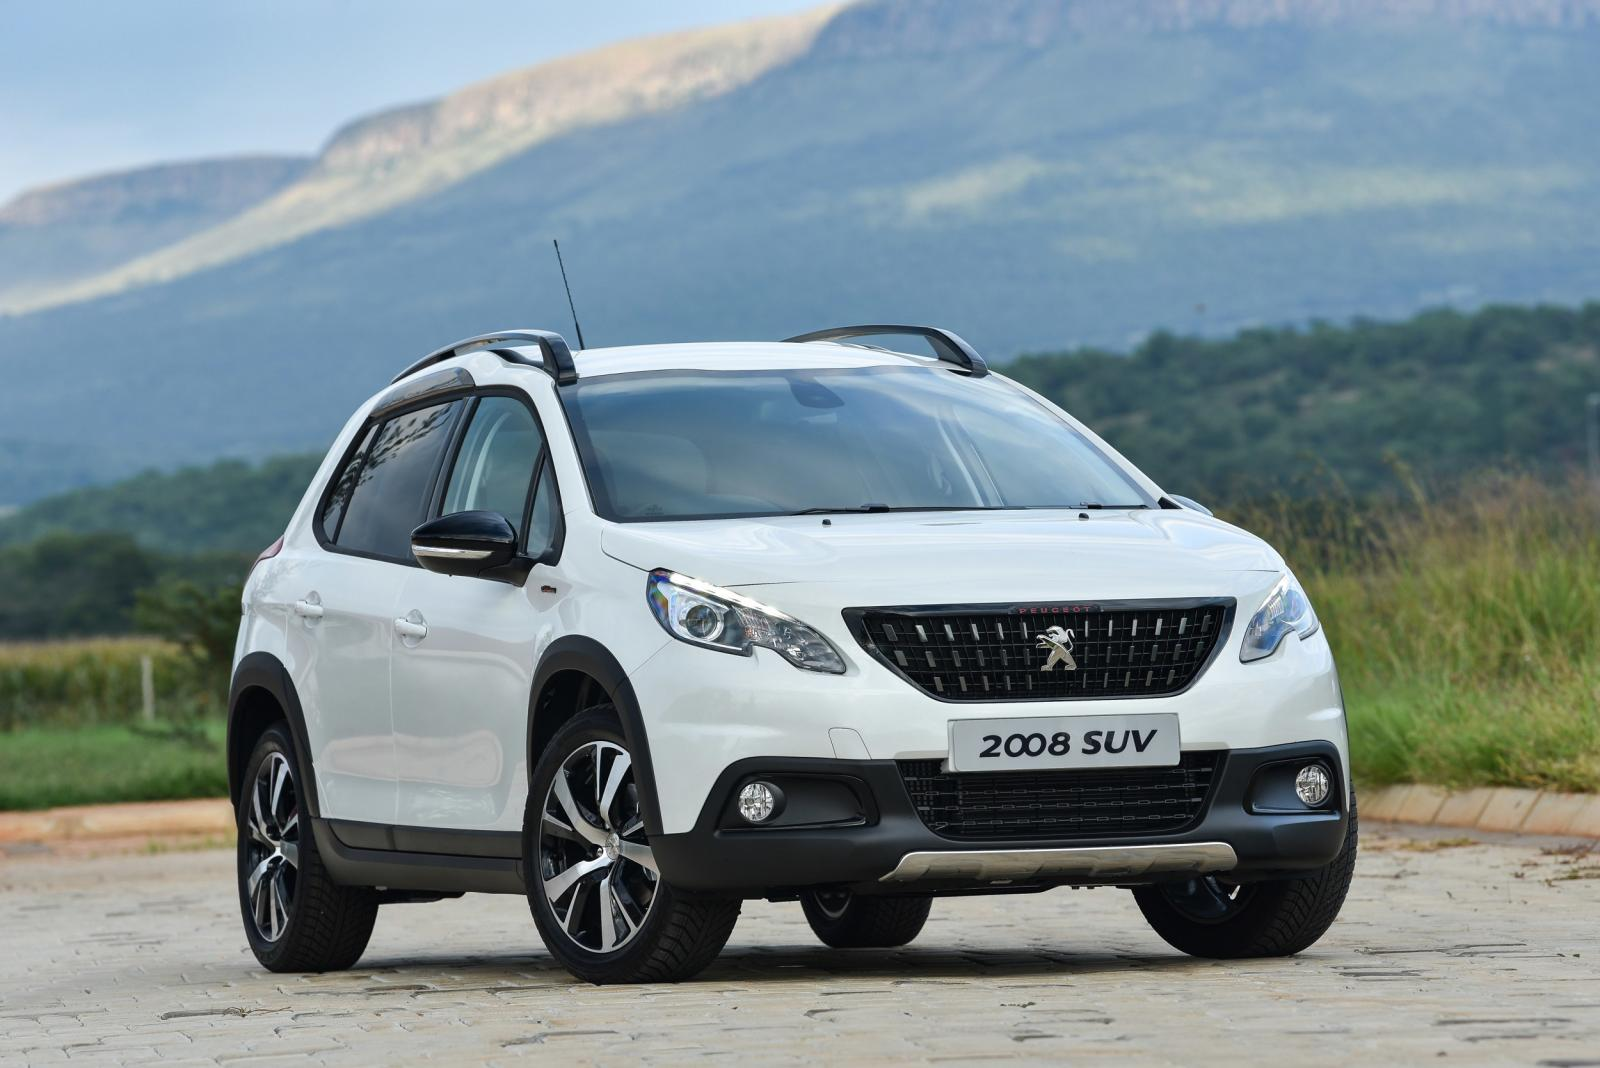 Peugeot 2008 2013 - 2016 Station wagon 5 door #1